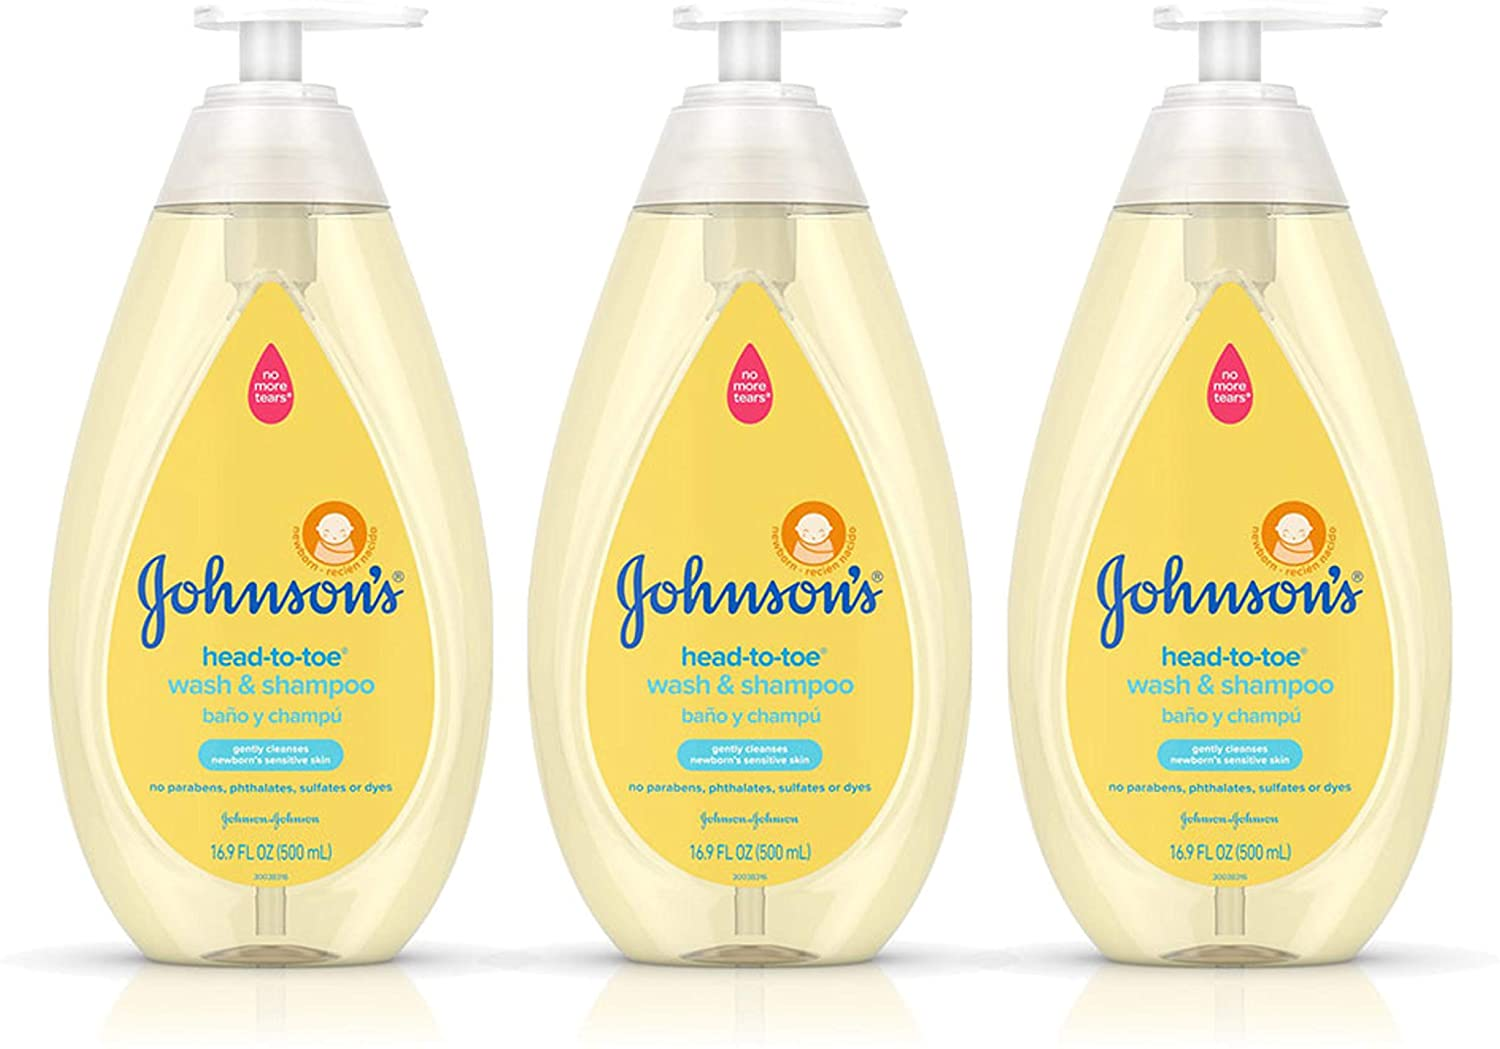 Johnson's Head-To-Toe Gentle Baby Body Wash & Shampoo, Tear-Free, Sulfate-Free & Hypoallergenic Bath Wash & Shampoo for Baby's Sensitive Skin & Hair, Washes Away 99.9% Of Germs 16.9 fl. oz